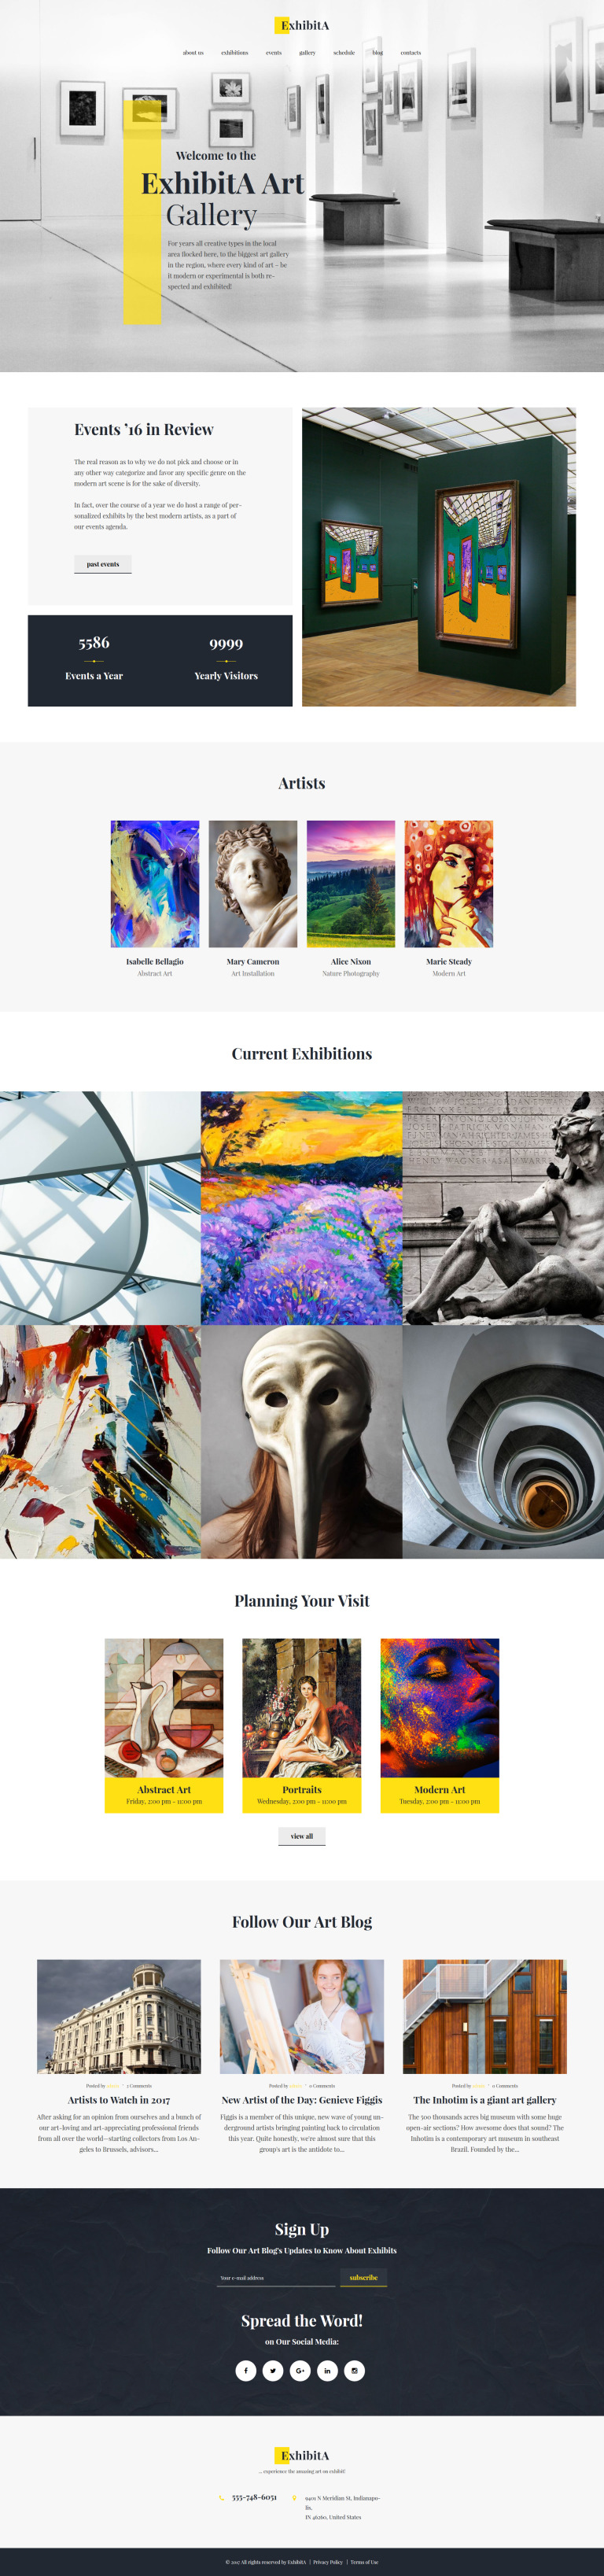 ExhibitA - Art Gallery Responsive WordPress Theme New Screenshots BIG